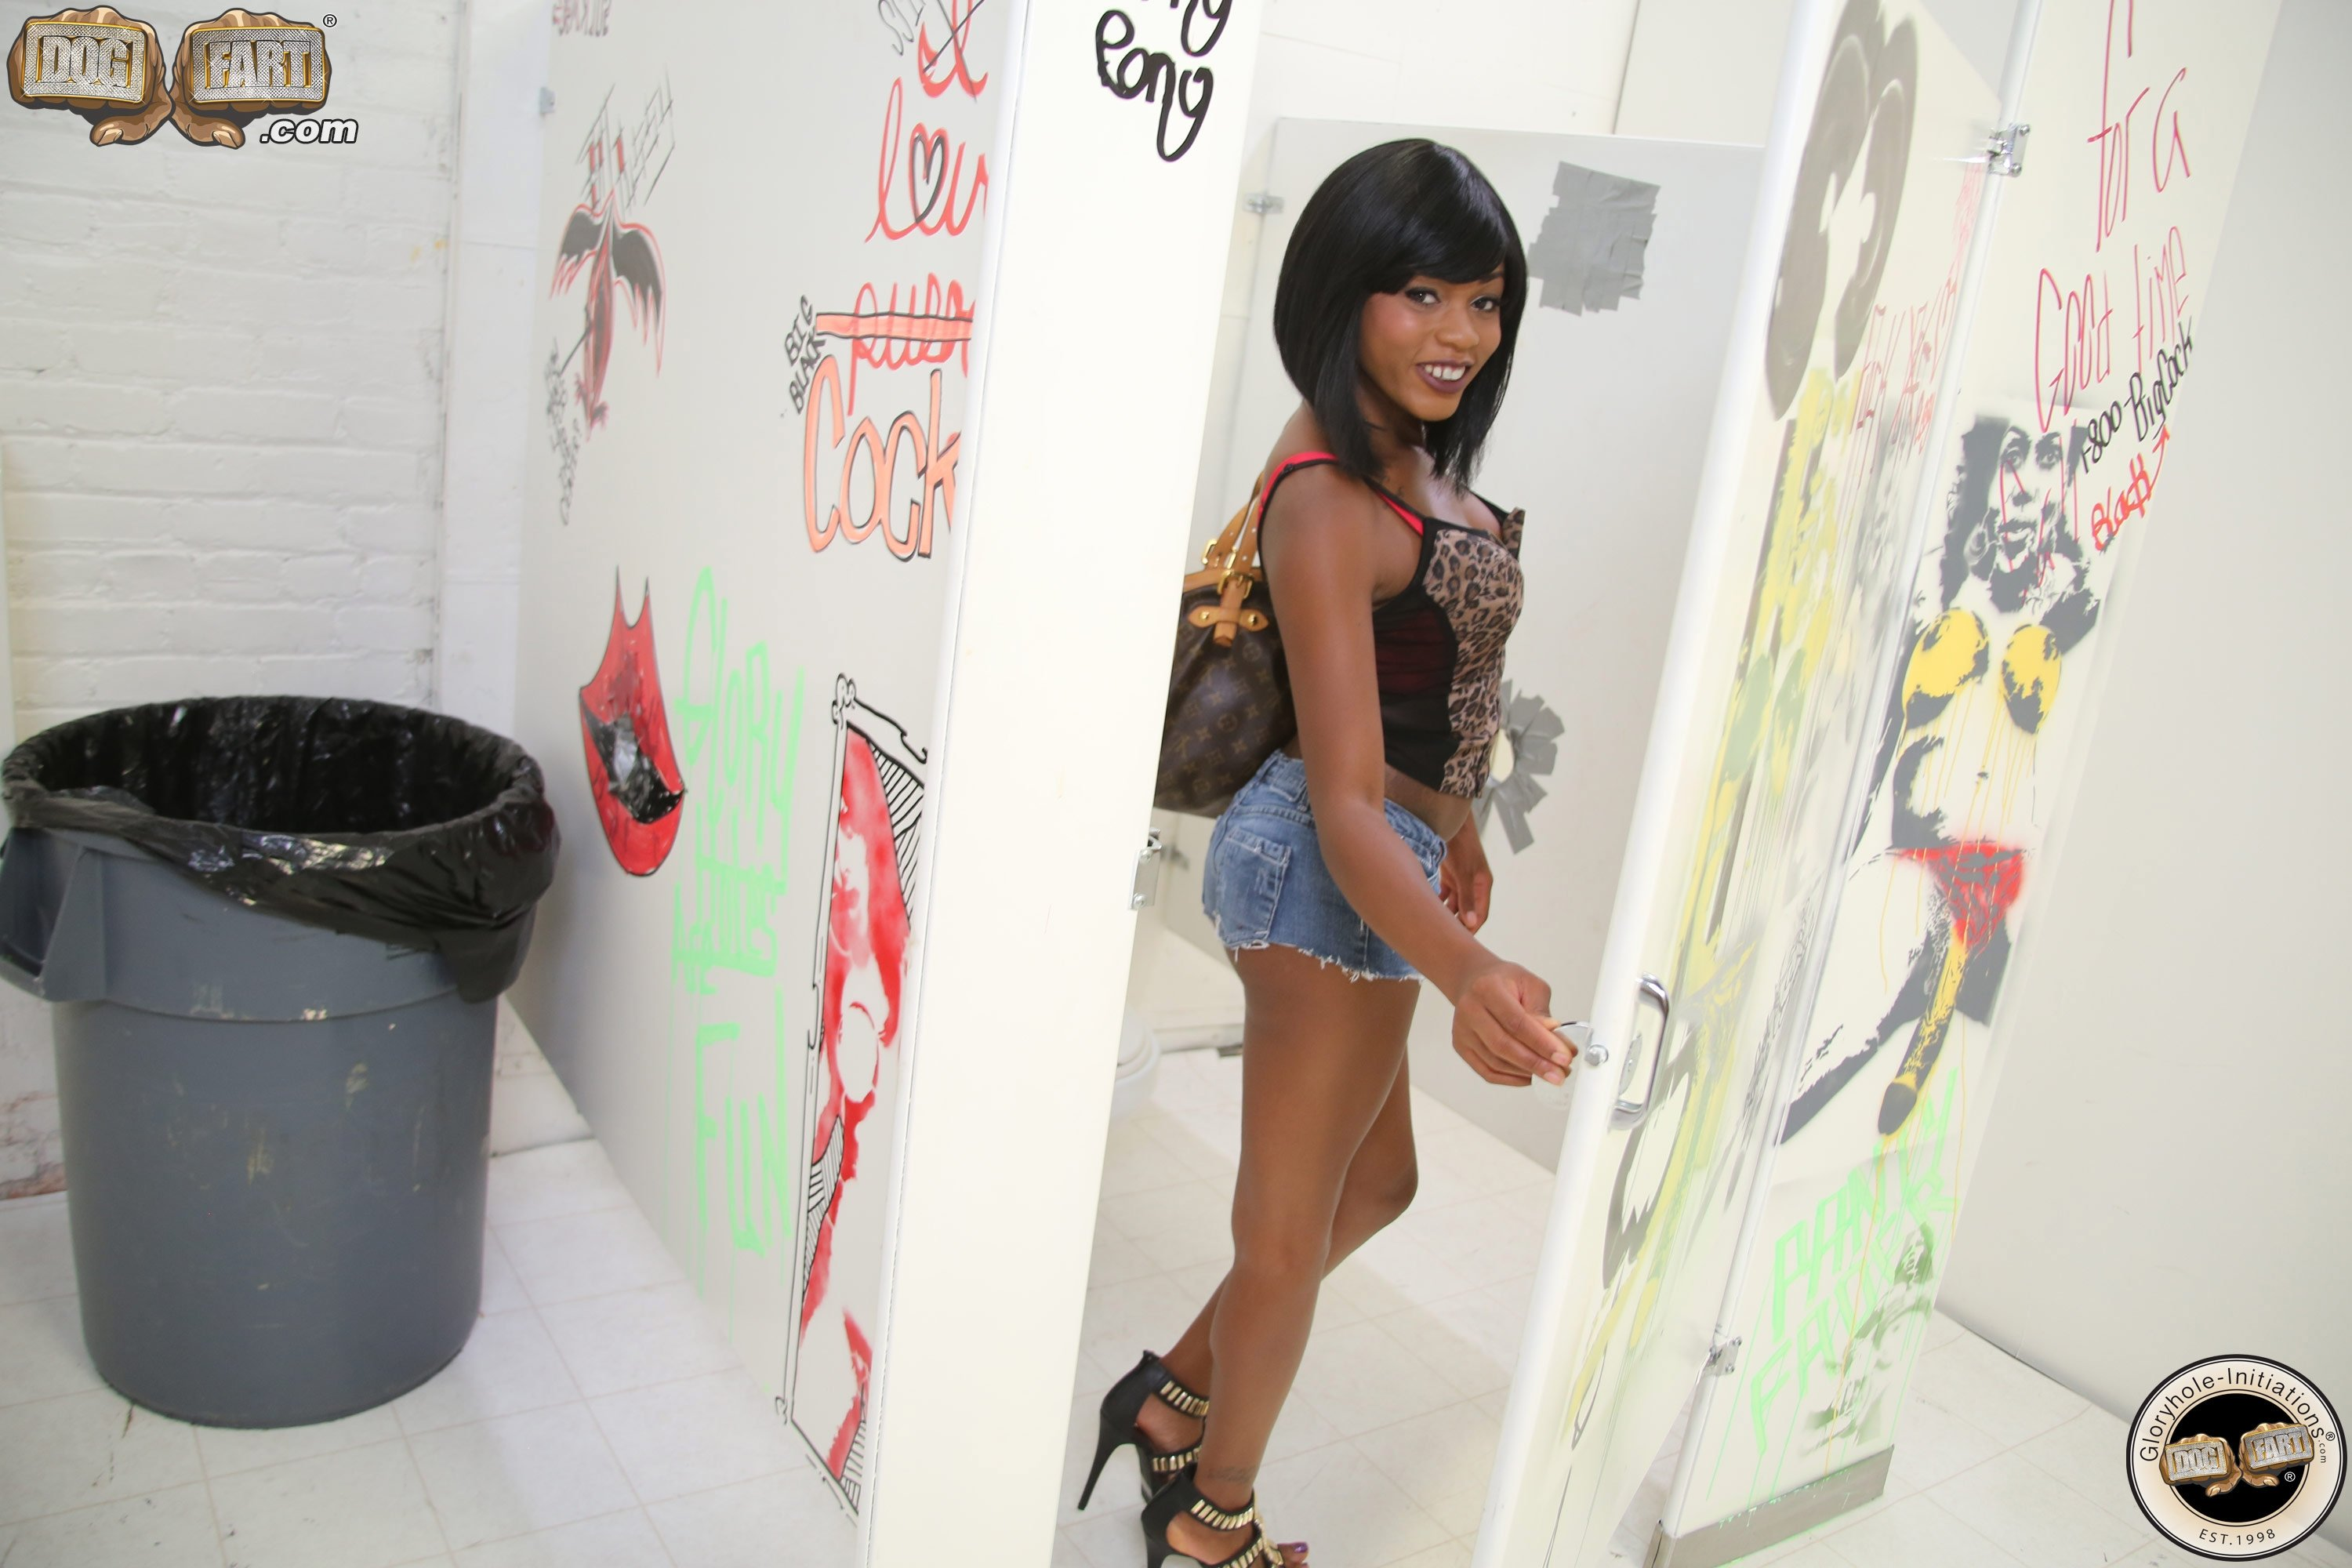 Gloryhole party queen of spades event